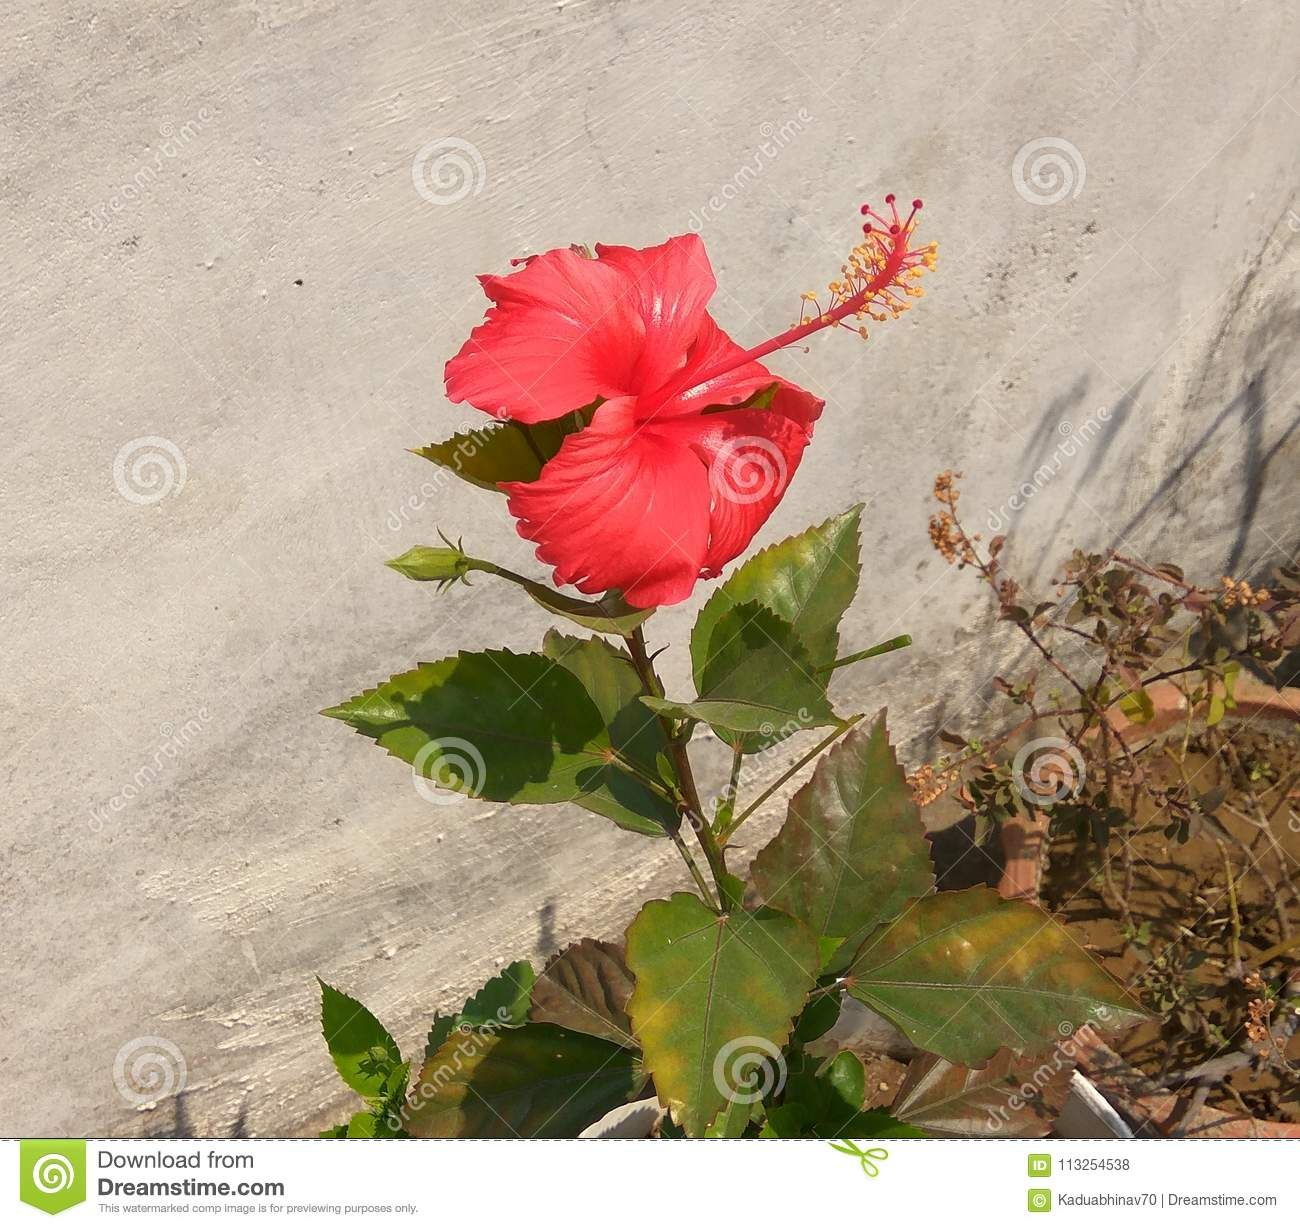 Photo About A Lovely Looking Red Jasmine Flower Bloomed In The